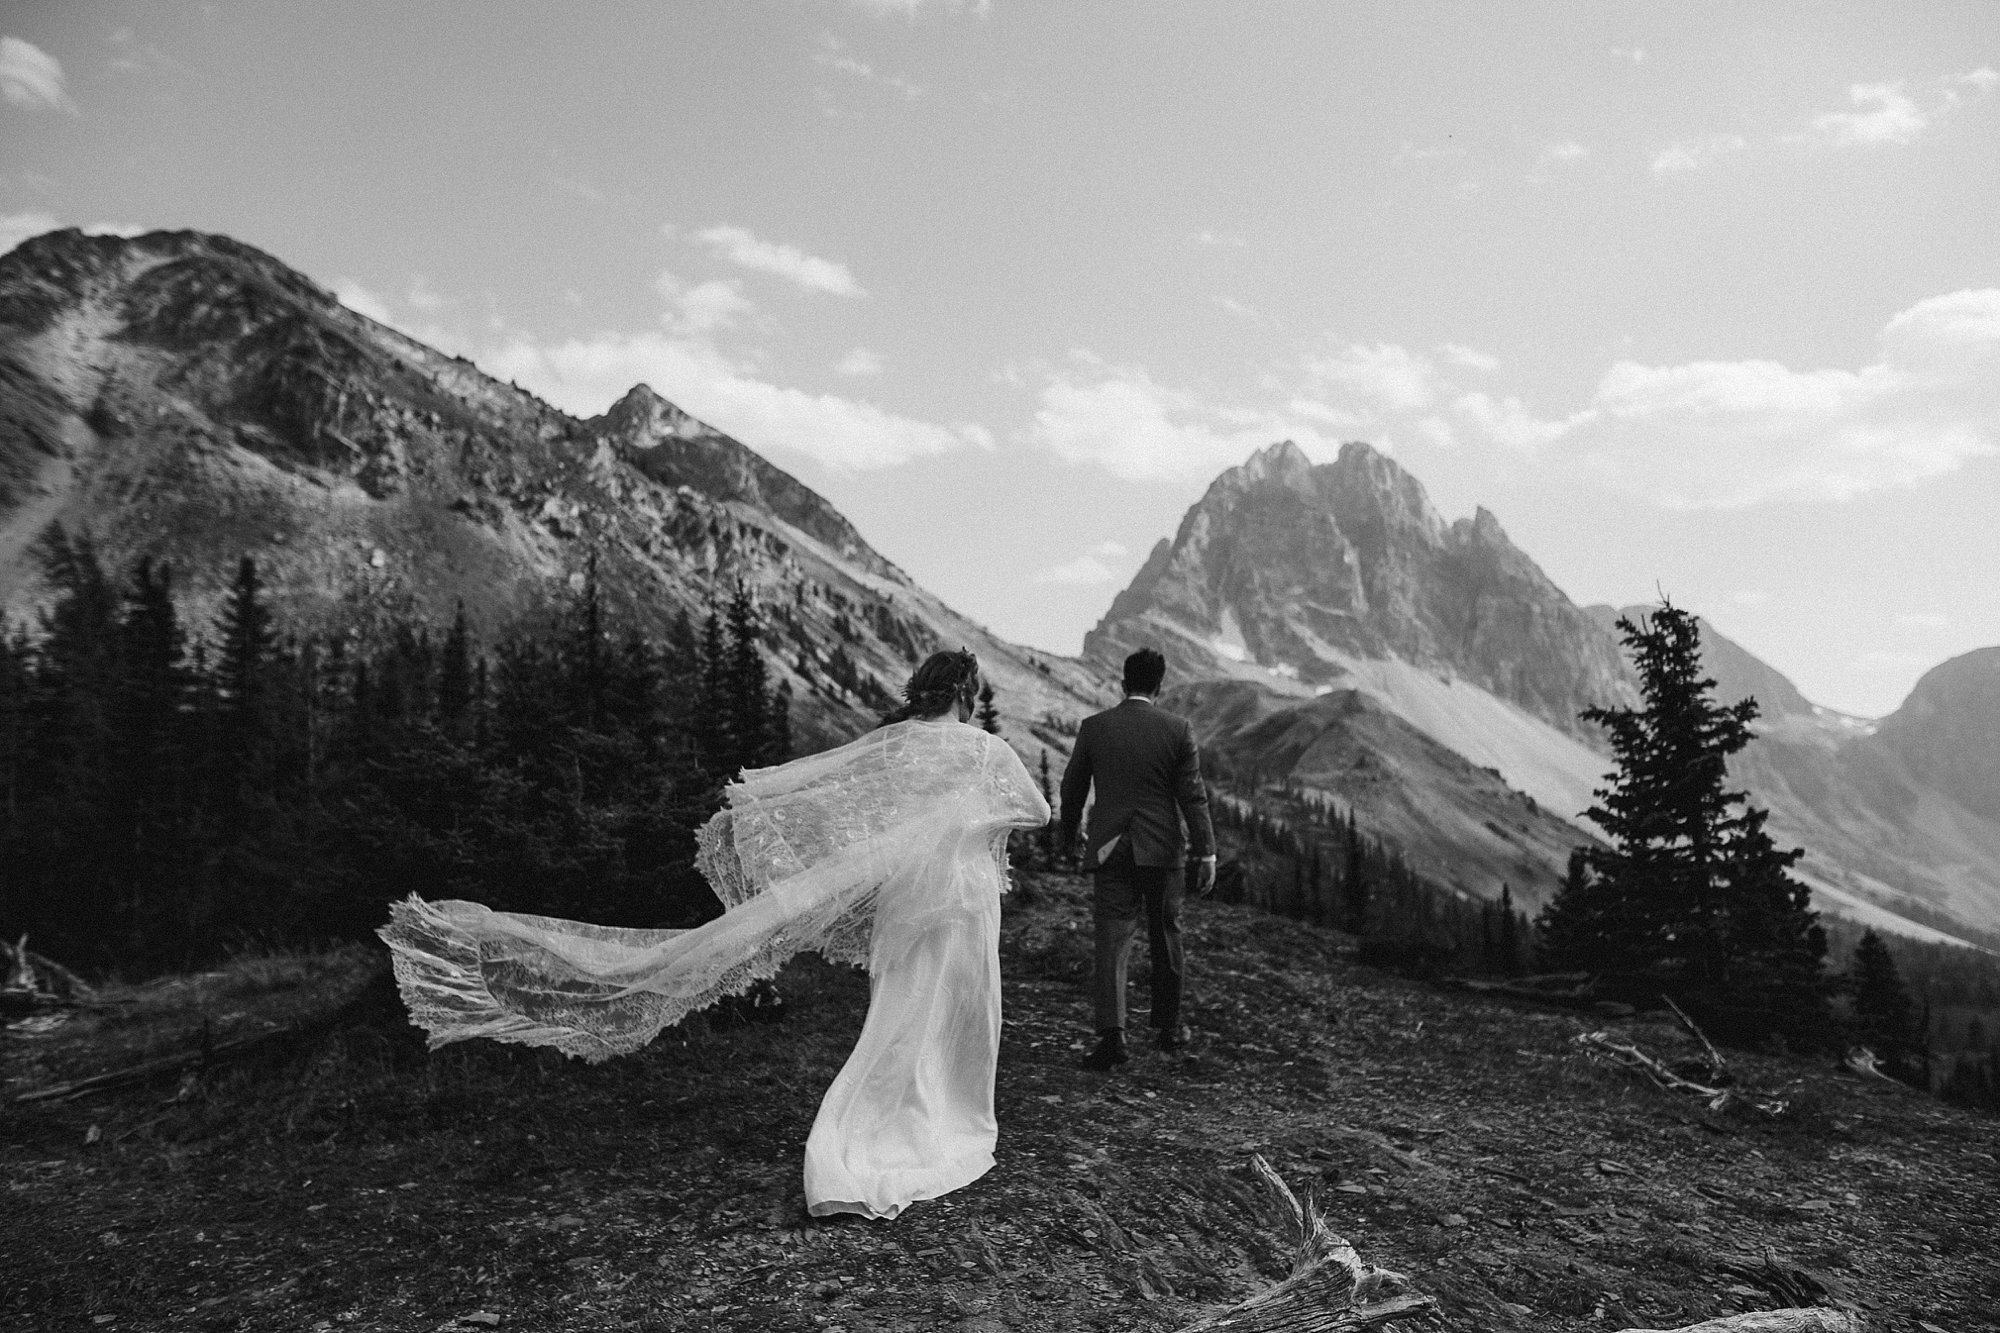 banff-canada-elopement-wedding_0027.jpg